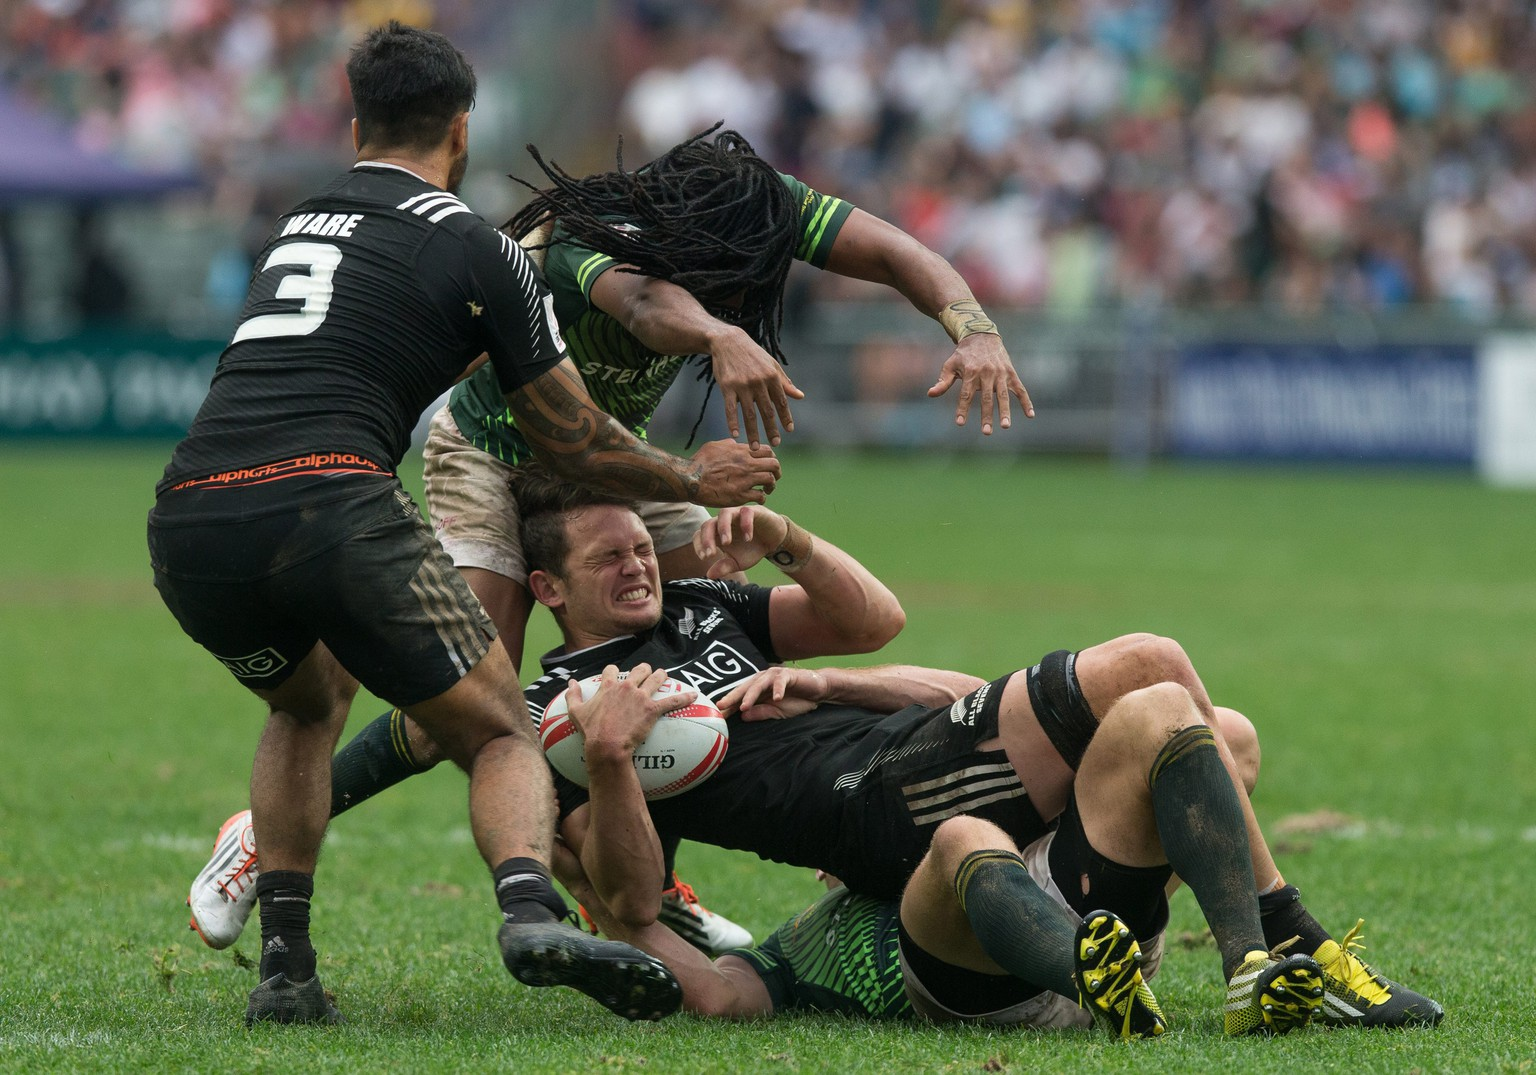 epa05252832 New Zealand's Lewis Ormond is tackled  during the match between New Zealand and South Africa for the Hong Kong Rugby Sevens tournament in Hong Kong, China, 10 April 2016.  EPA/JEROME FAVRE